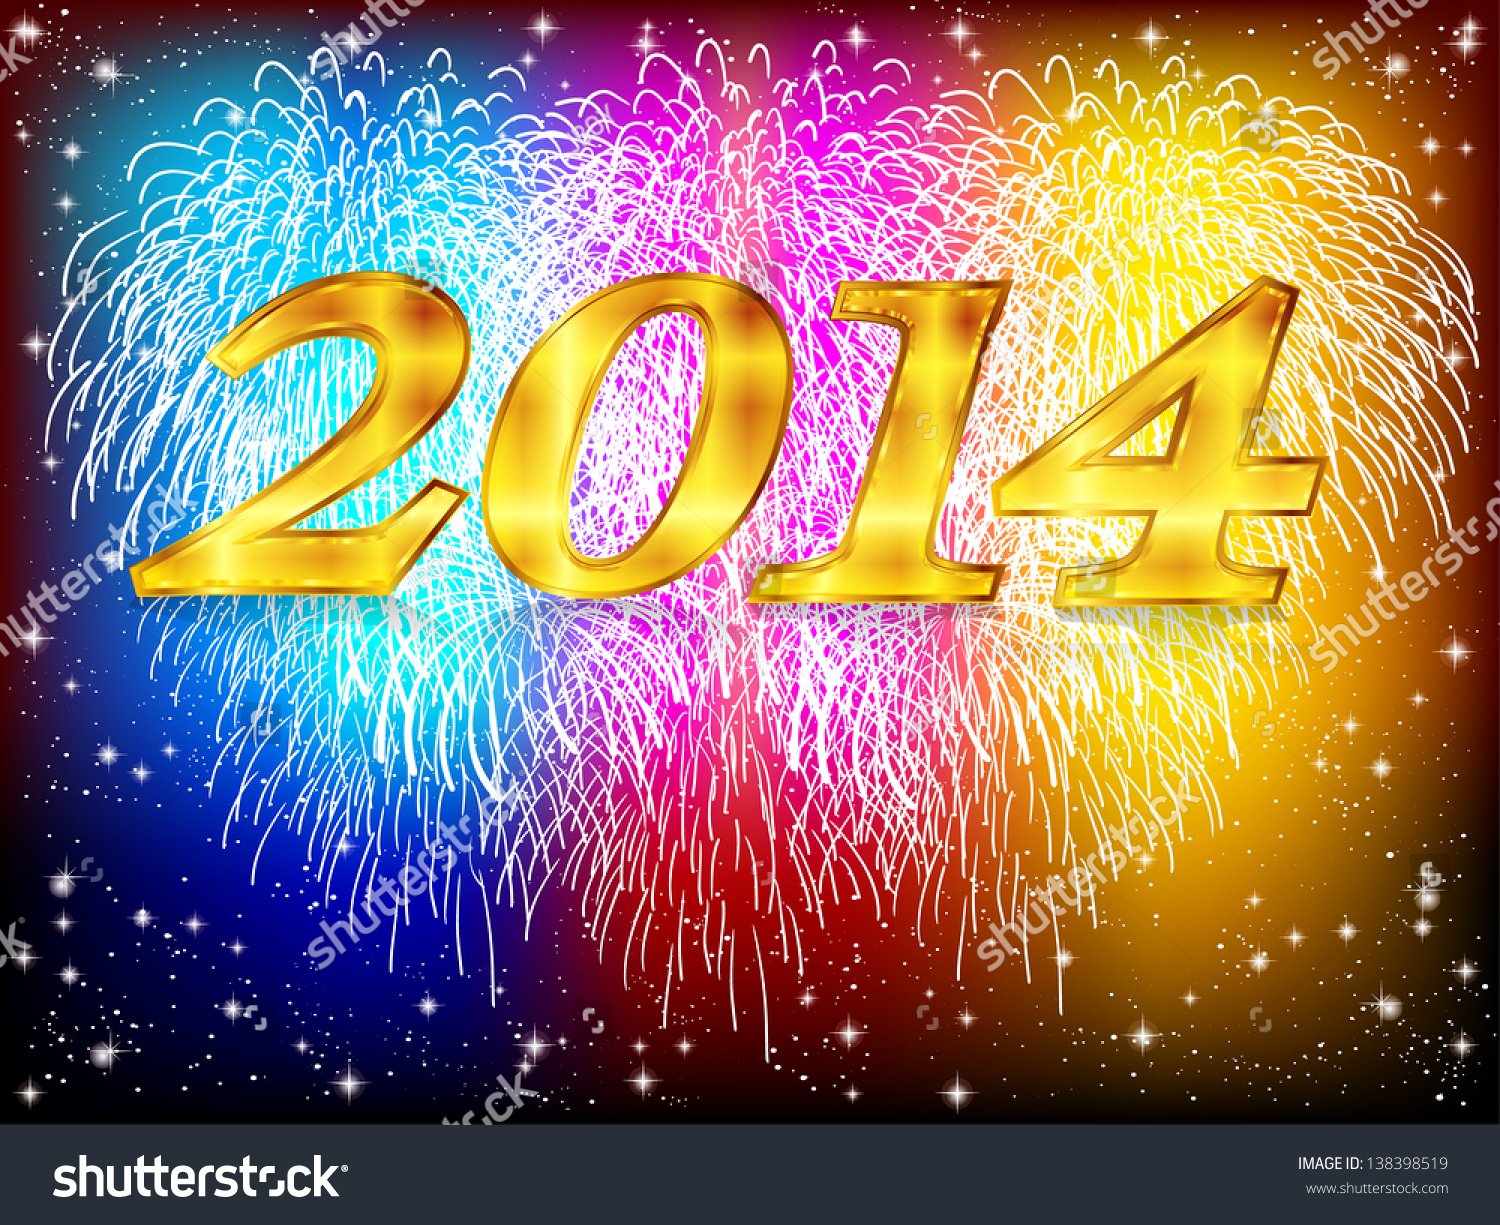 2014 fireworks background stock vector 138398519